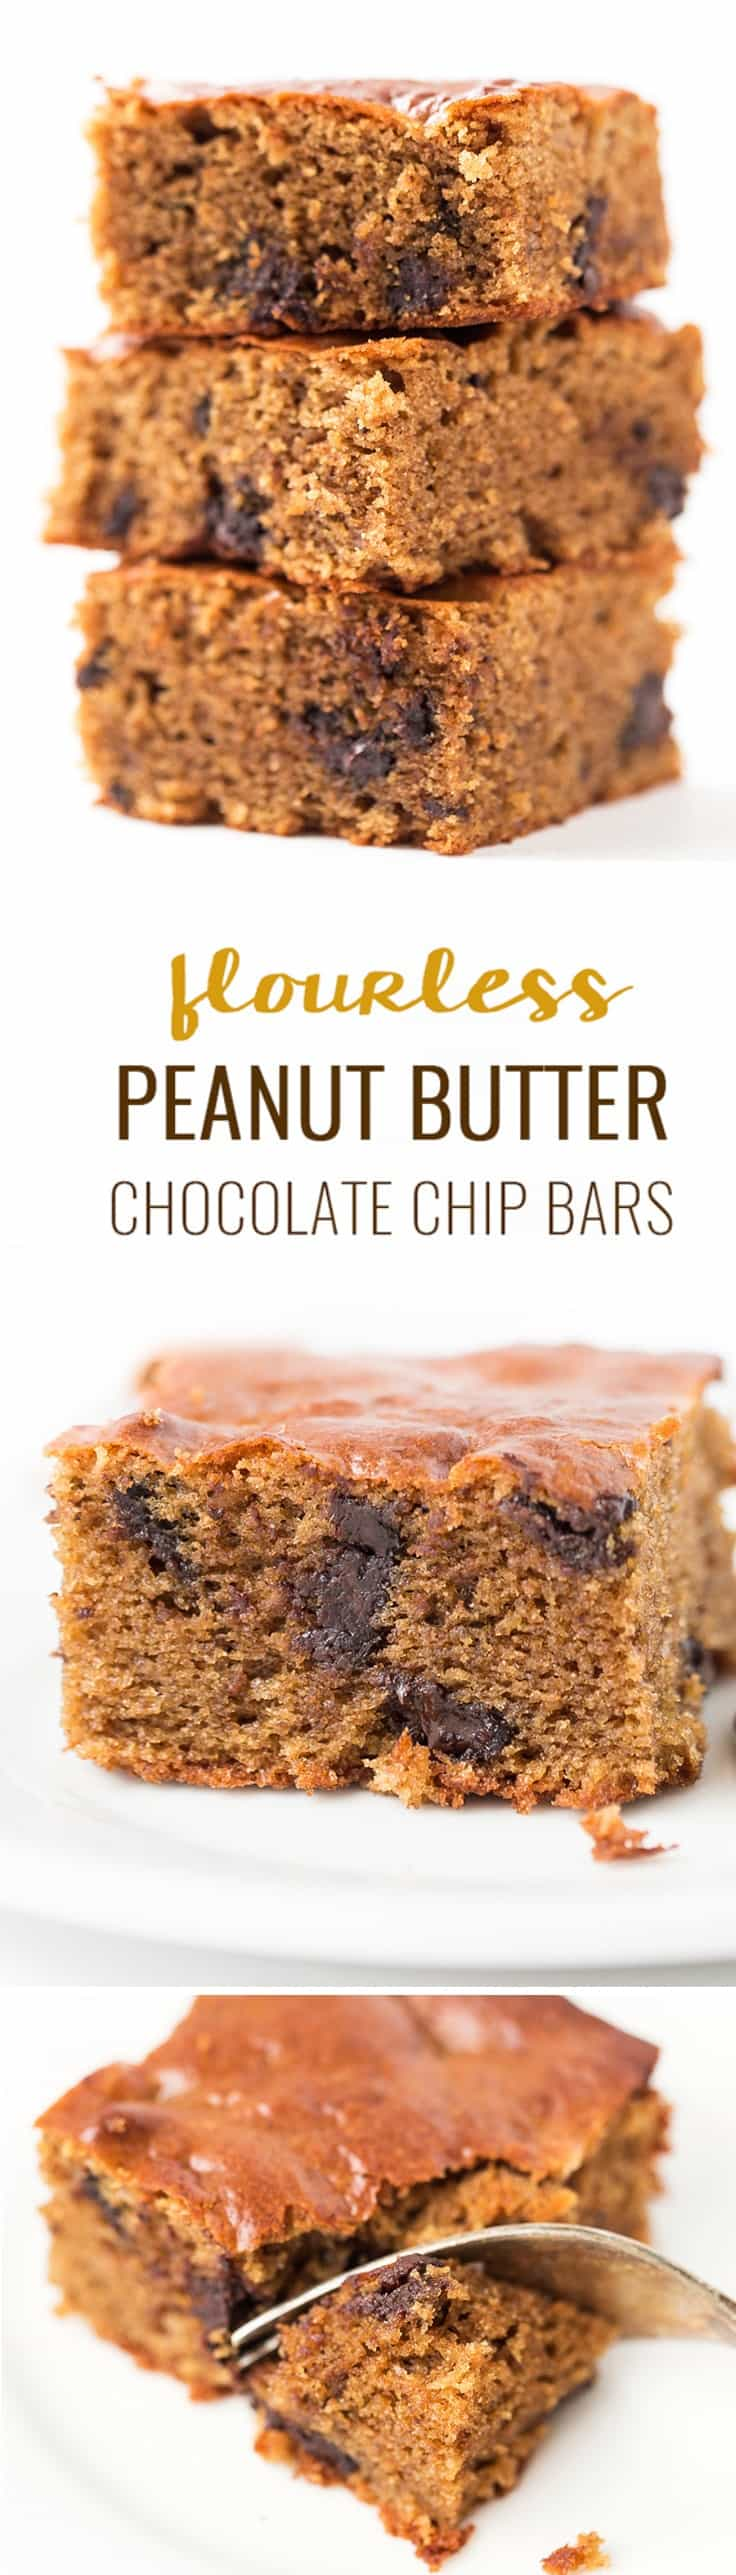 These decadent peanut butter chocolate chip bars make for one healthy dessert! Without any flour, dairy or oils, they have a light, tender & fluffy texture!